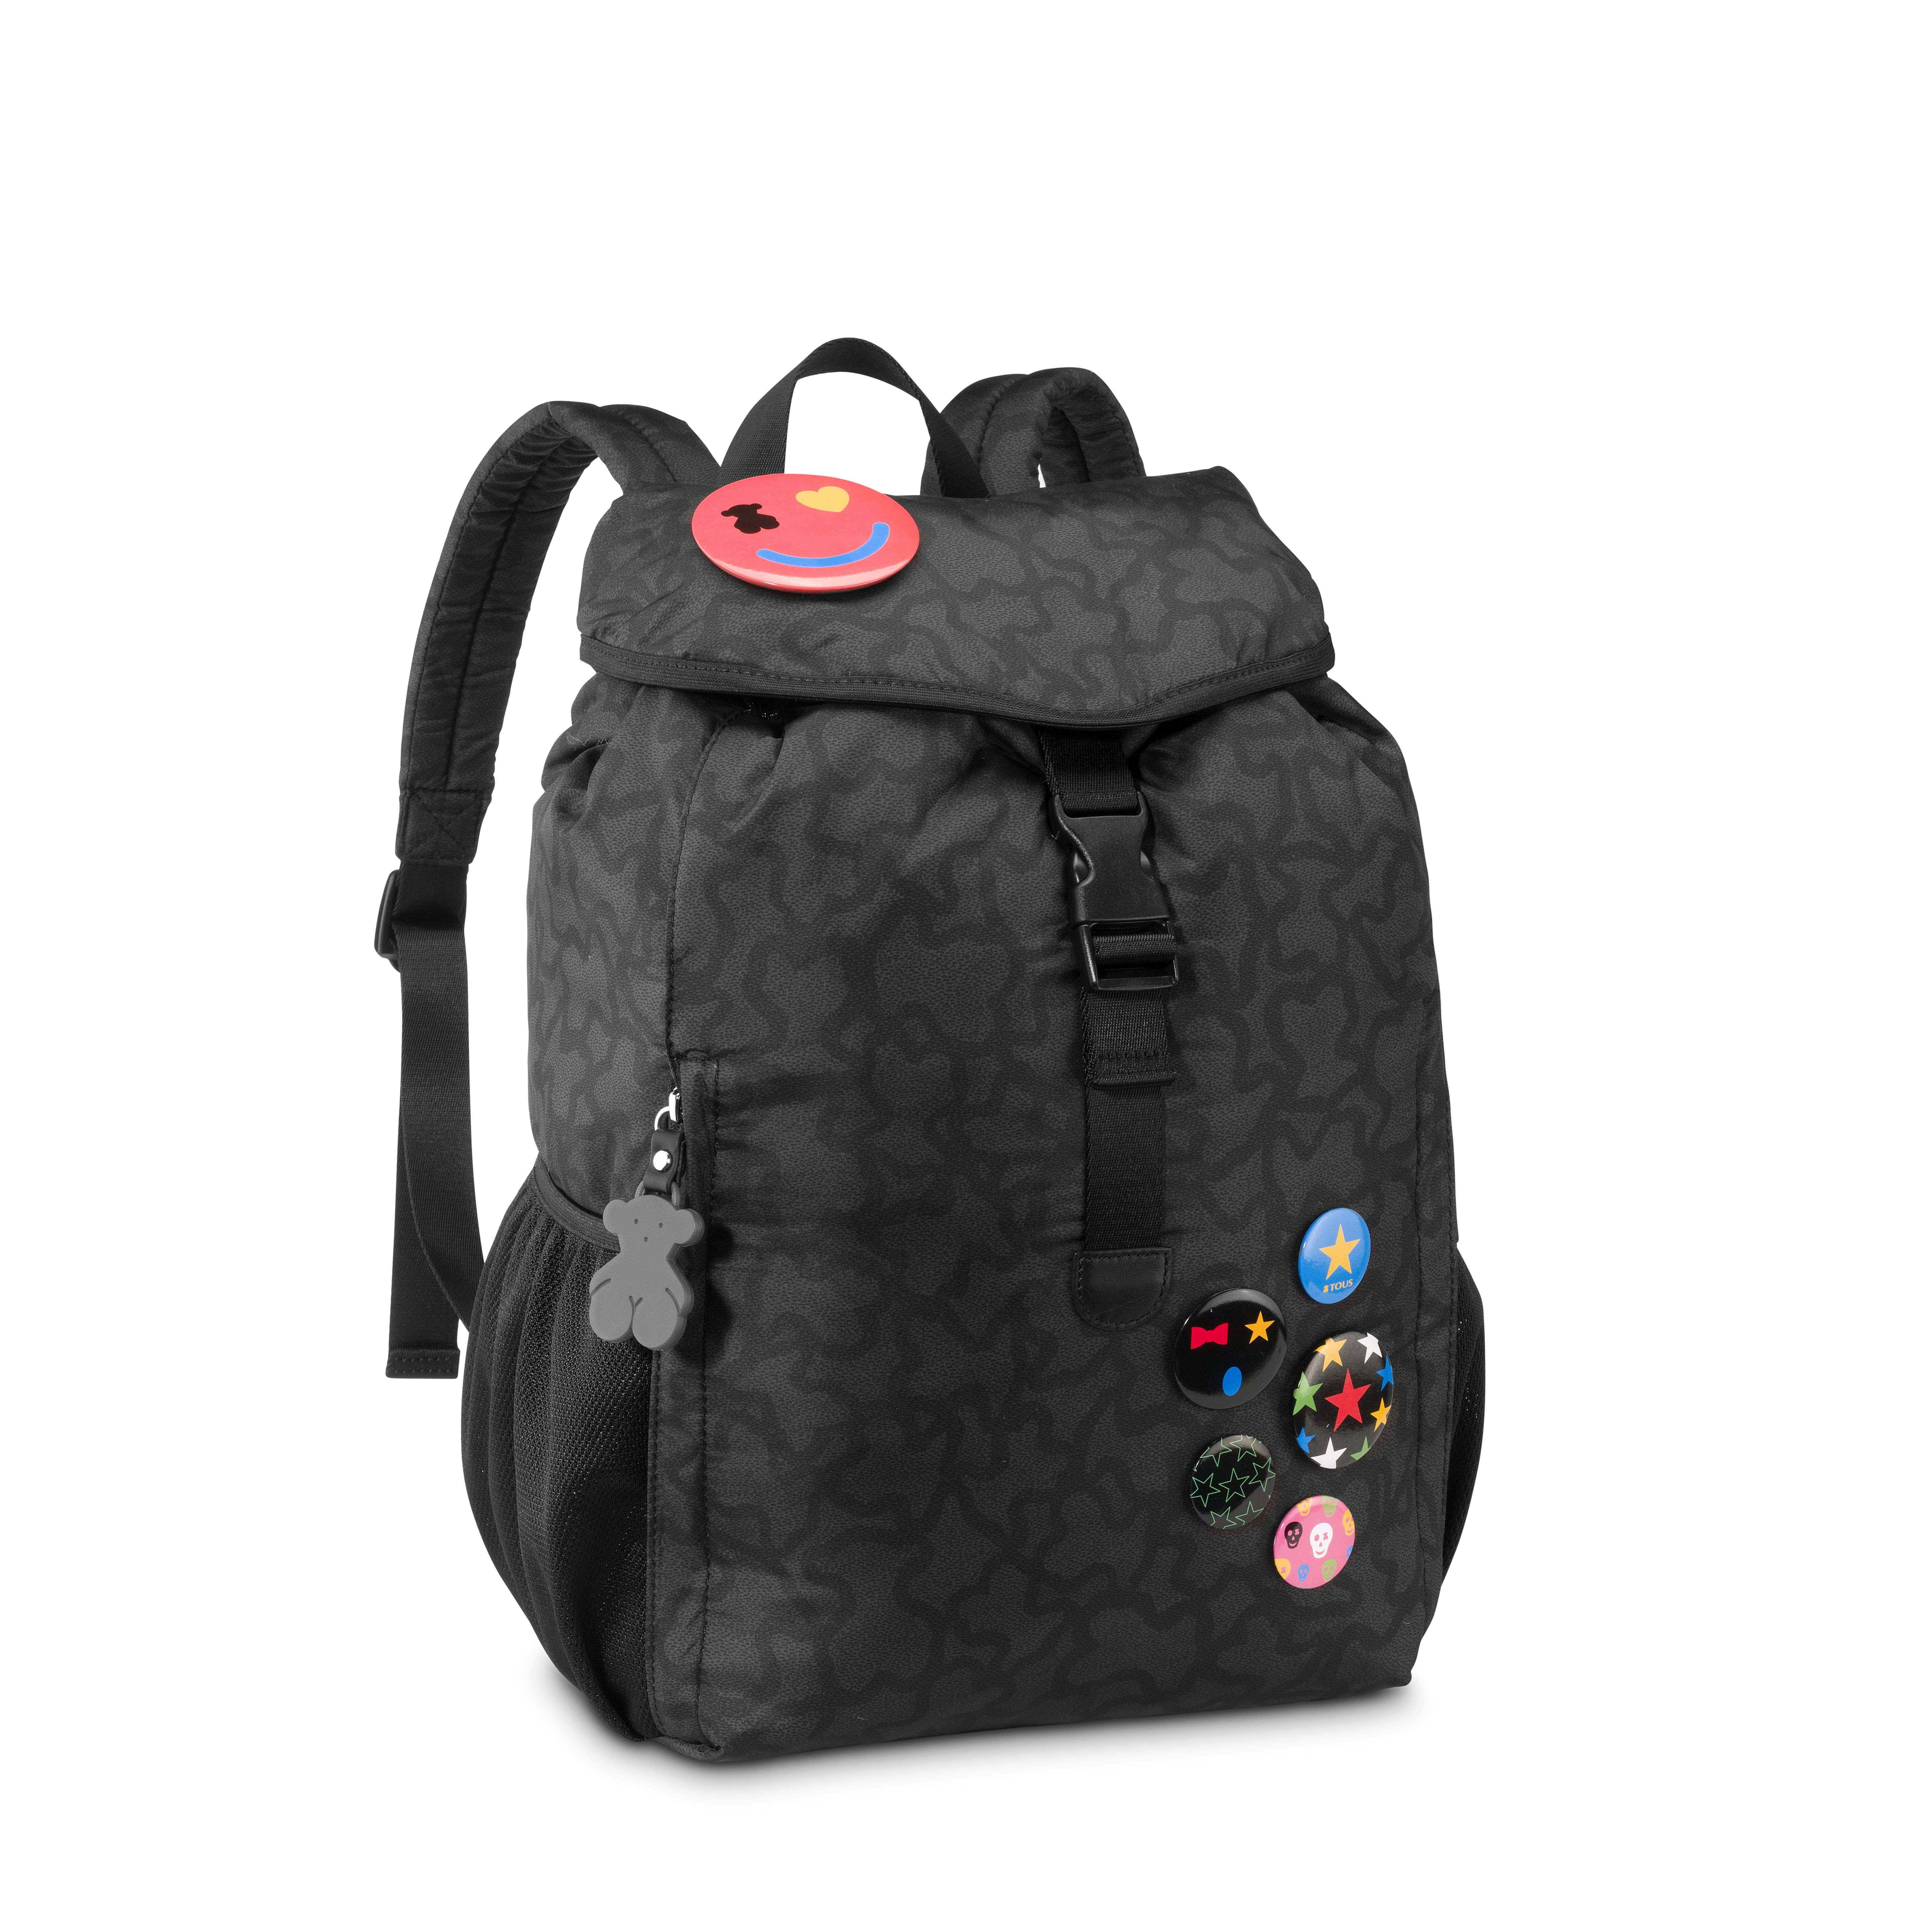 TOUS Carmo collection backpack